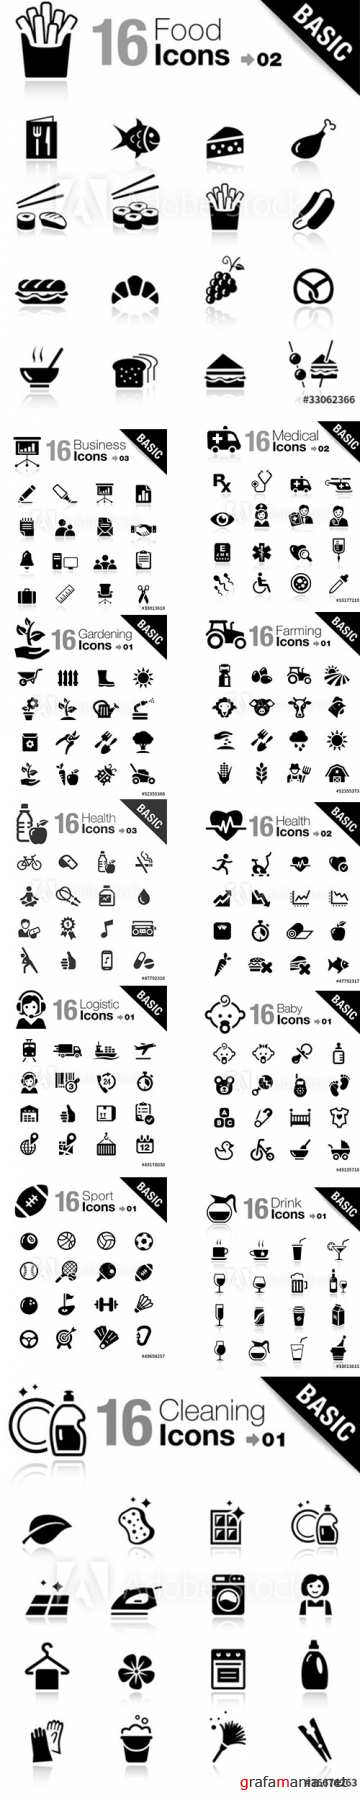 Basic Icons Pack